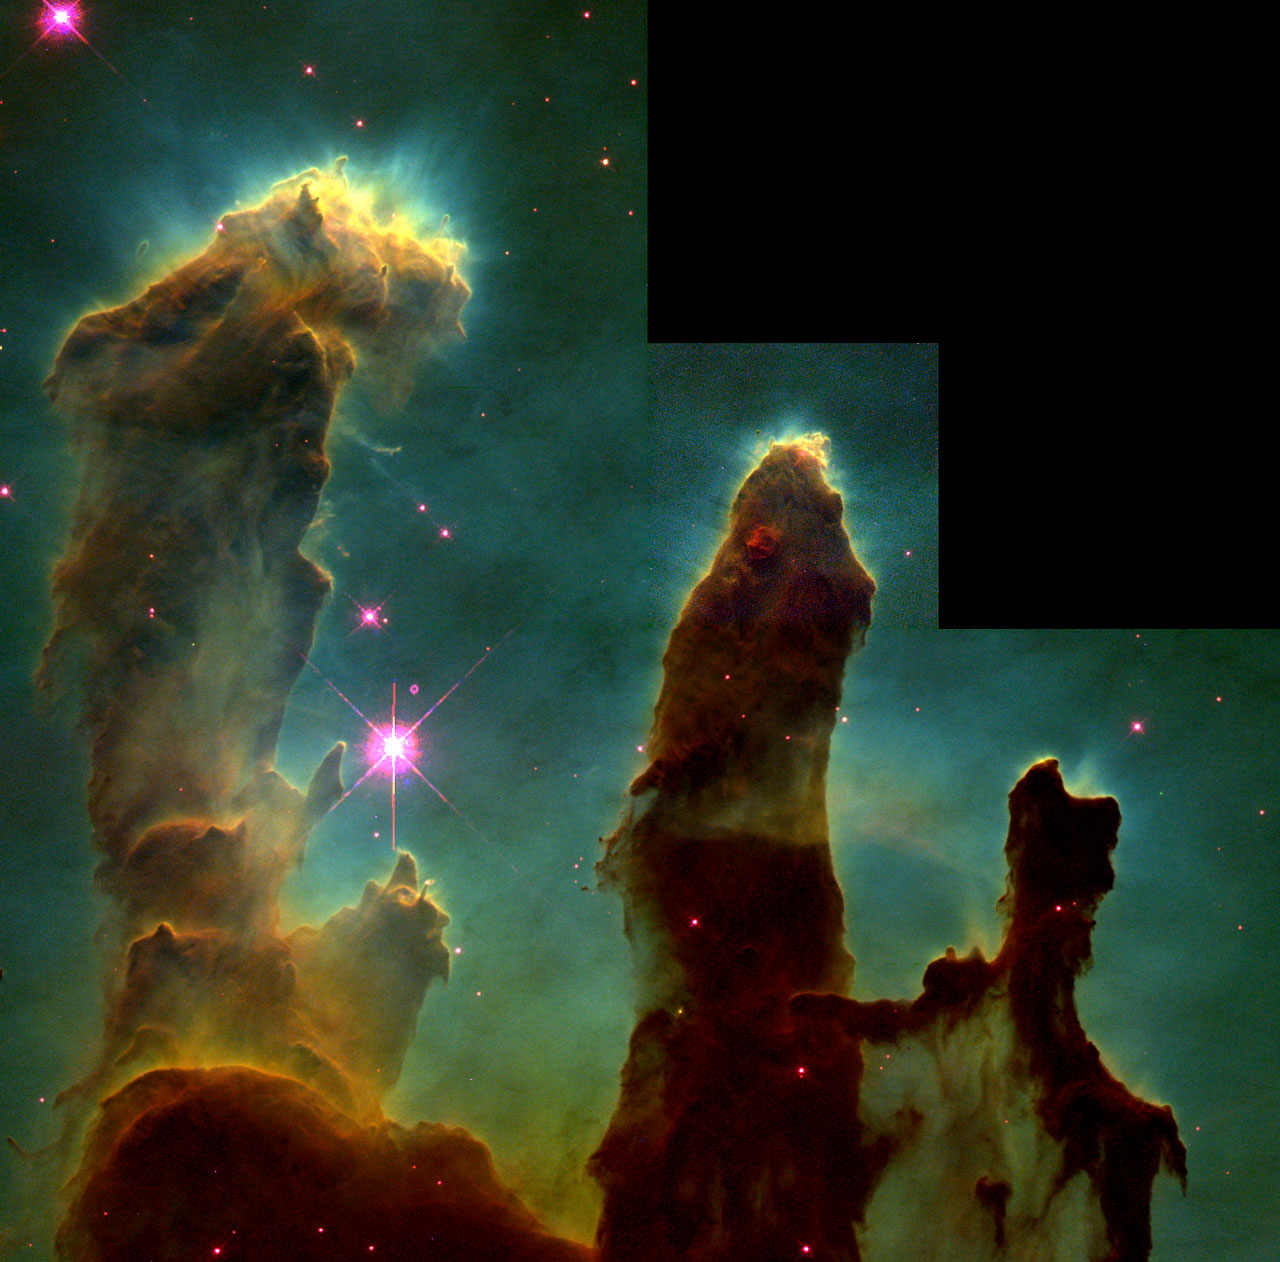 These columns that resemble stalagmites protruding from the floor of a cavern columns are in fact cool interstellar hydrogen gas and dust that act as incubators for new stars. Inside them and on their surface astronomers have found knots or globules of den